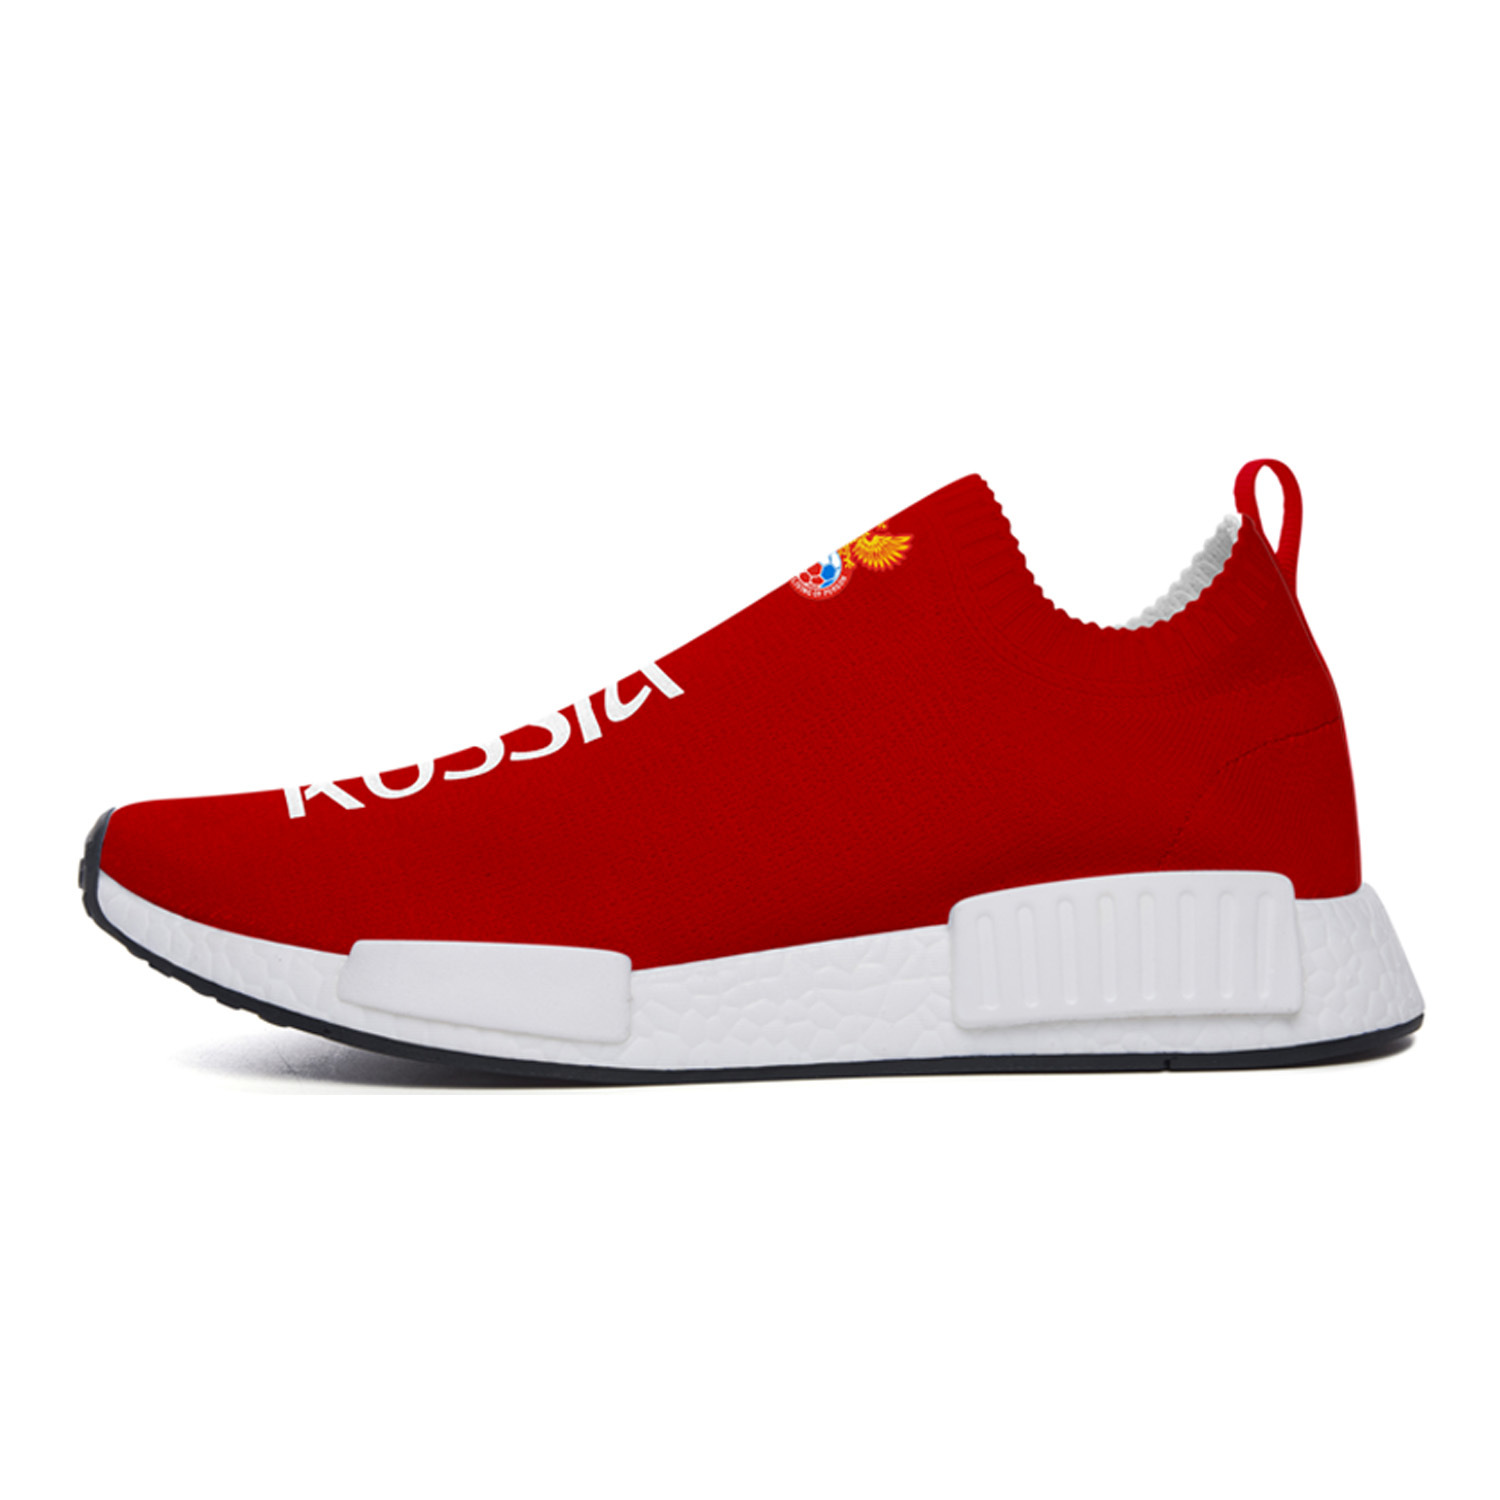 af9f391ab2b7 China Build Your Own Nmd Shoes for World Cup Russian Team - China Build  Your Own Shoes, Comfortable Shoes